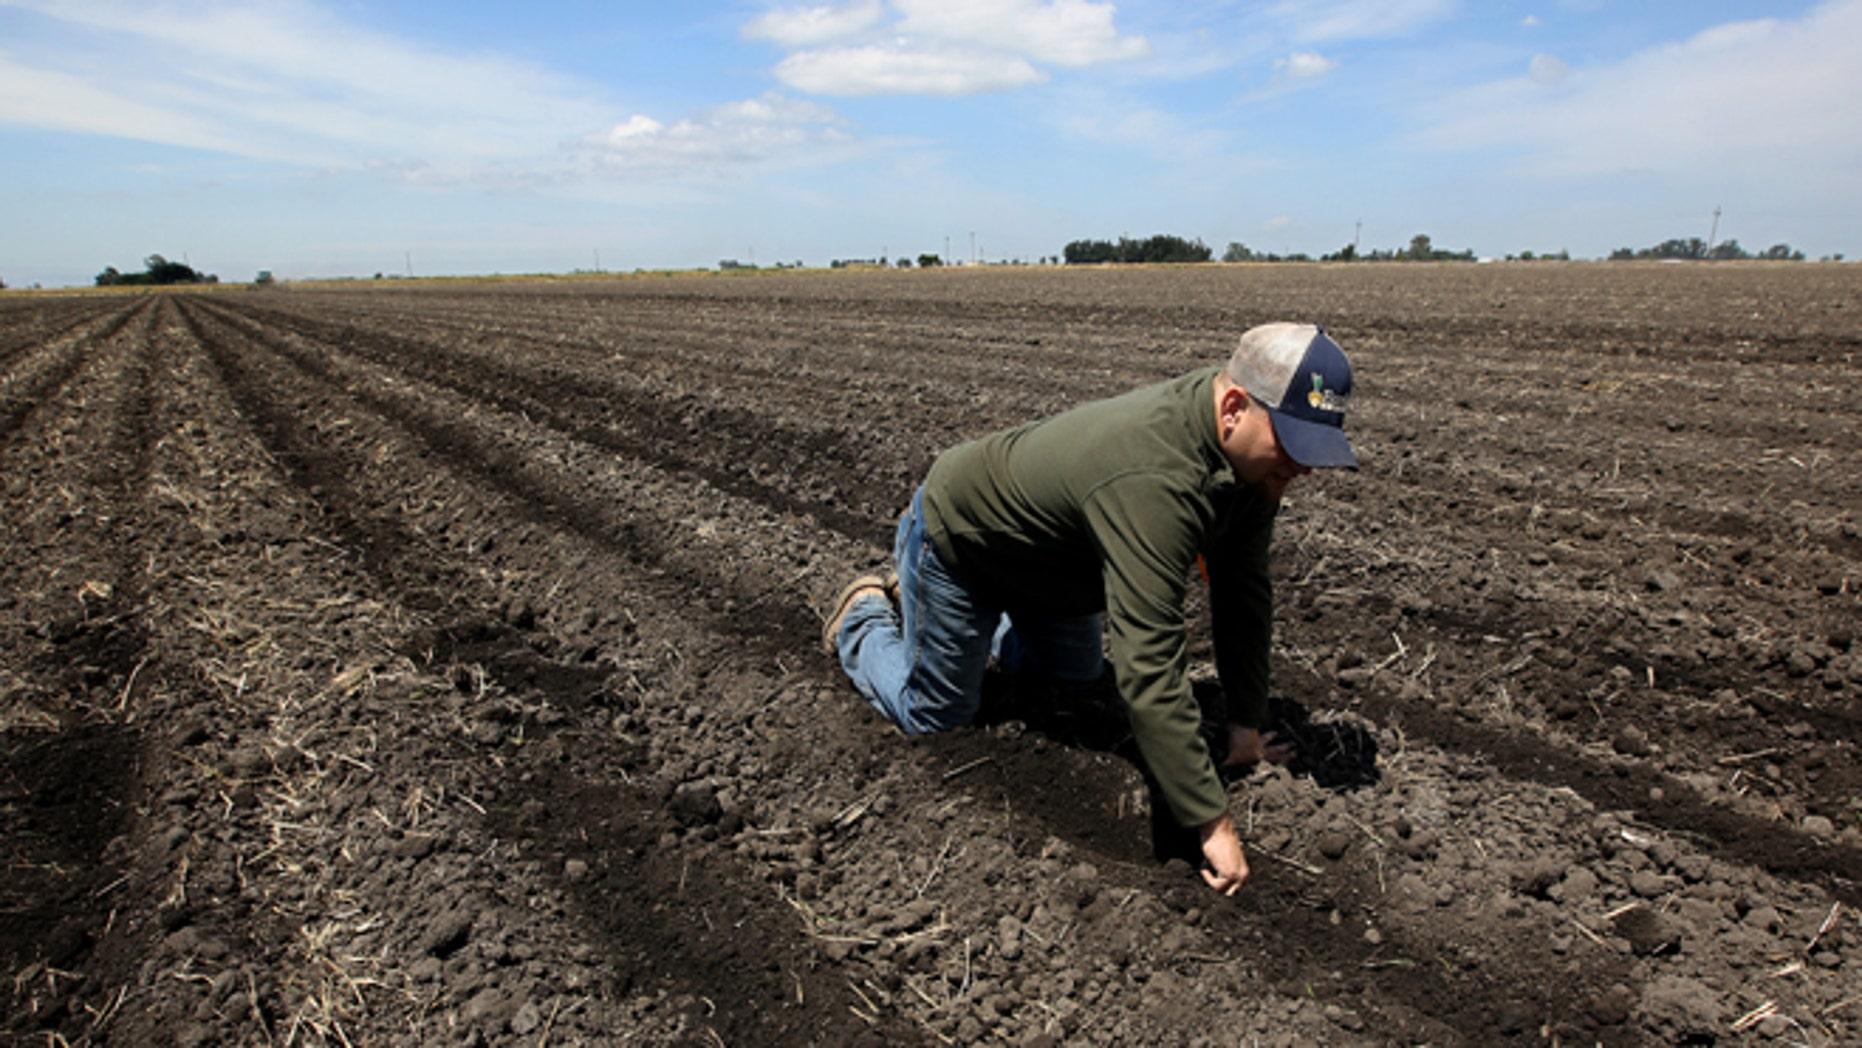 In this photo taken Monday, May 18, 2015, Gino Celli checks the moisture of land just planted with corn seed on land he farms near Stockton, Calif. Celli farms 1,500 acres of land and manages another 7,000 acres, has senior water rights and draws his irrigation water from the Sacramento-San Joaquin River Delta. Farmers in the Sacramento-San Joaquin River Delta who have California's oldest water rights are proposing to voluntarily cut their use by 25 percent to avoid the possibility of even harsher restrictions by the state later this summer as the record drought continues. (AP Photo/Rich Pedroncelli)